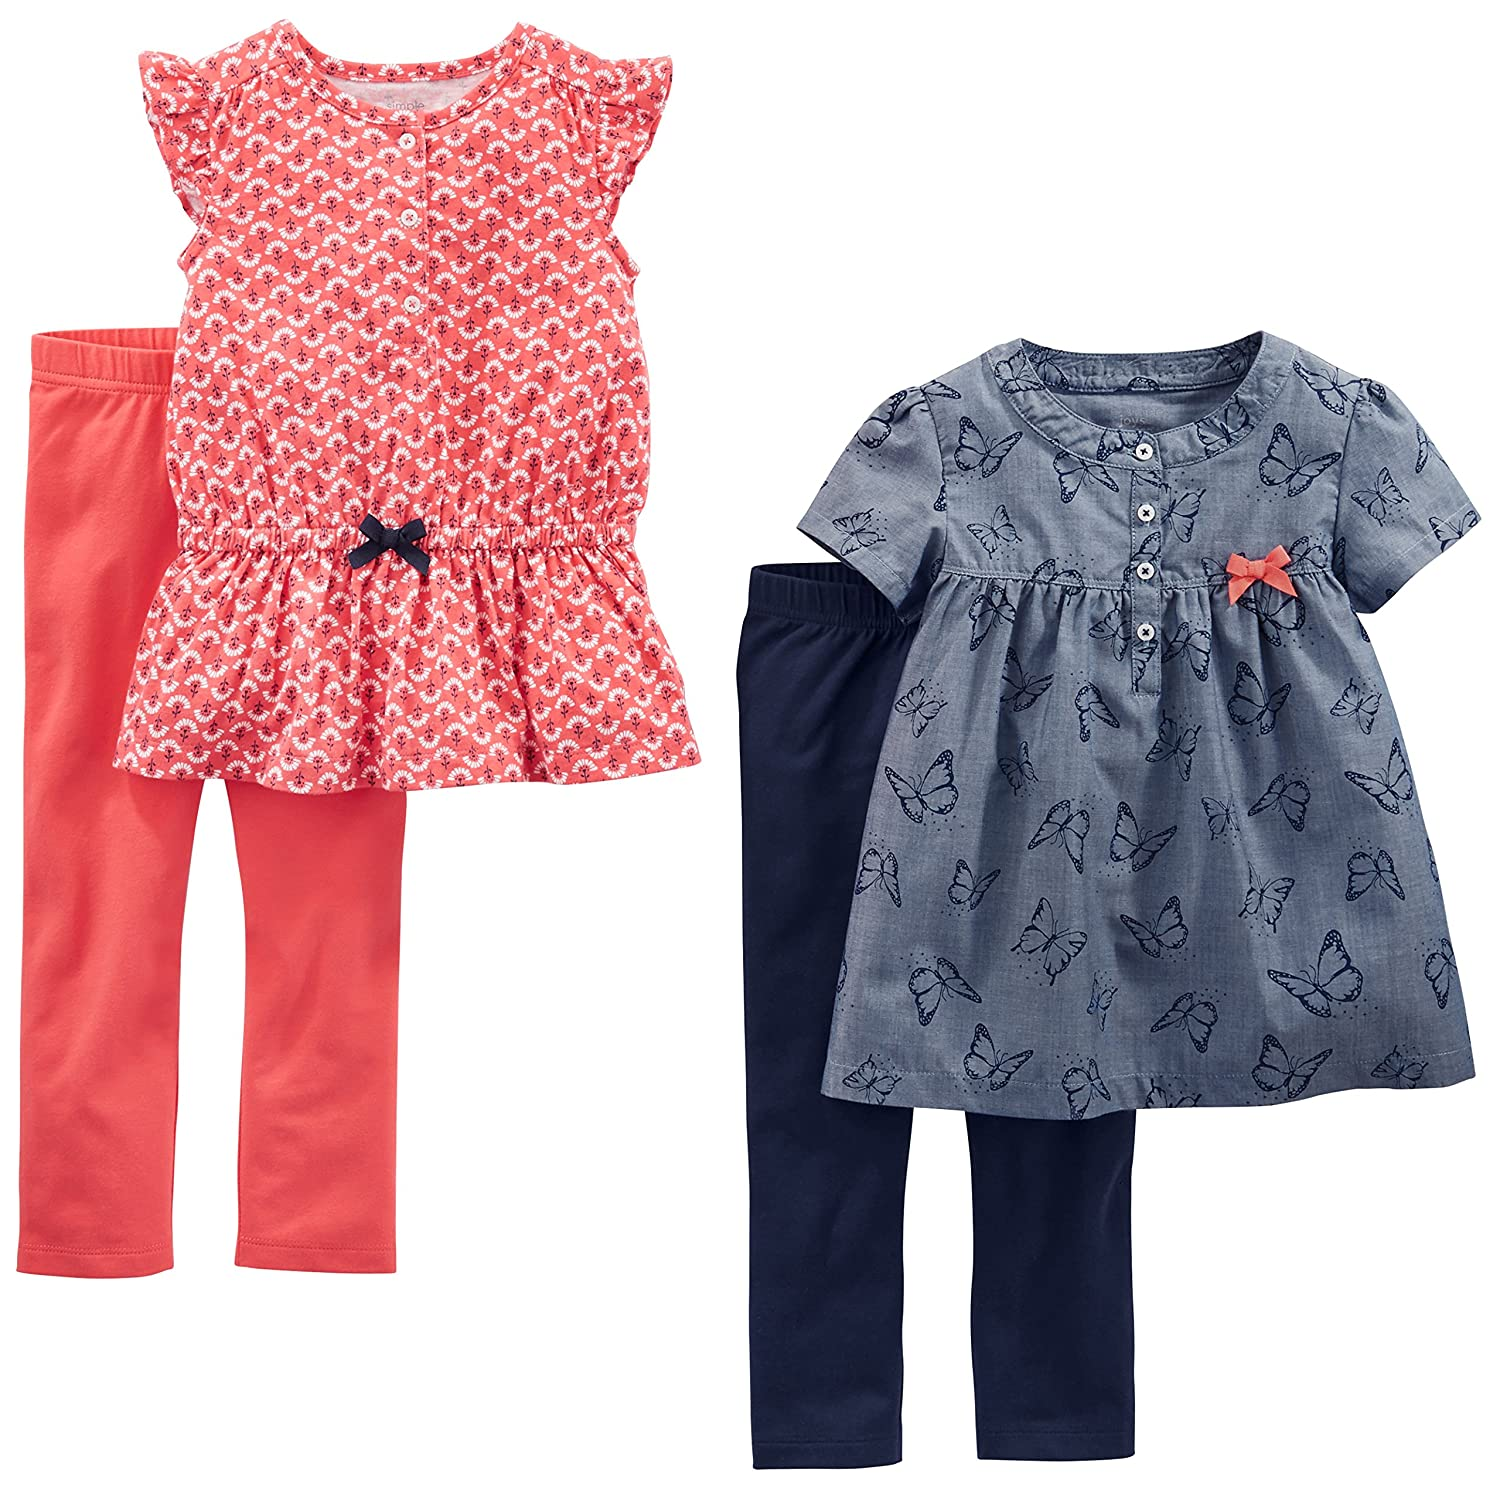 Simple Joys by Carters Toddler Girls 4-Piece Tops and Pants Playwear Set